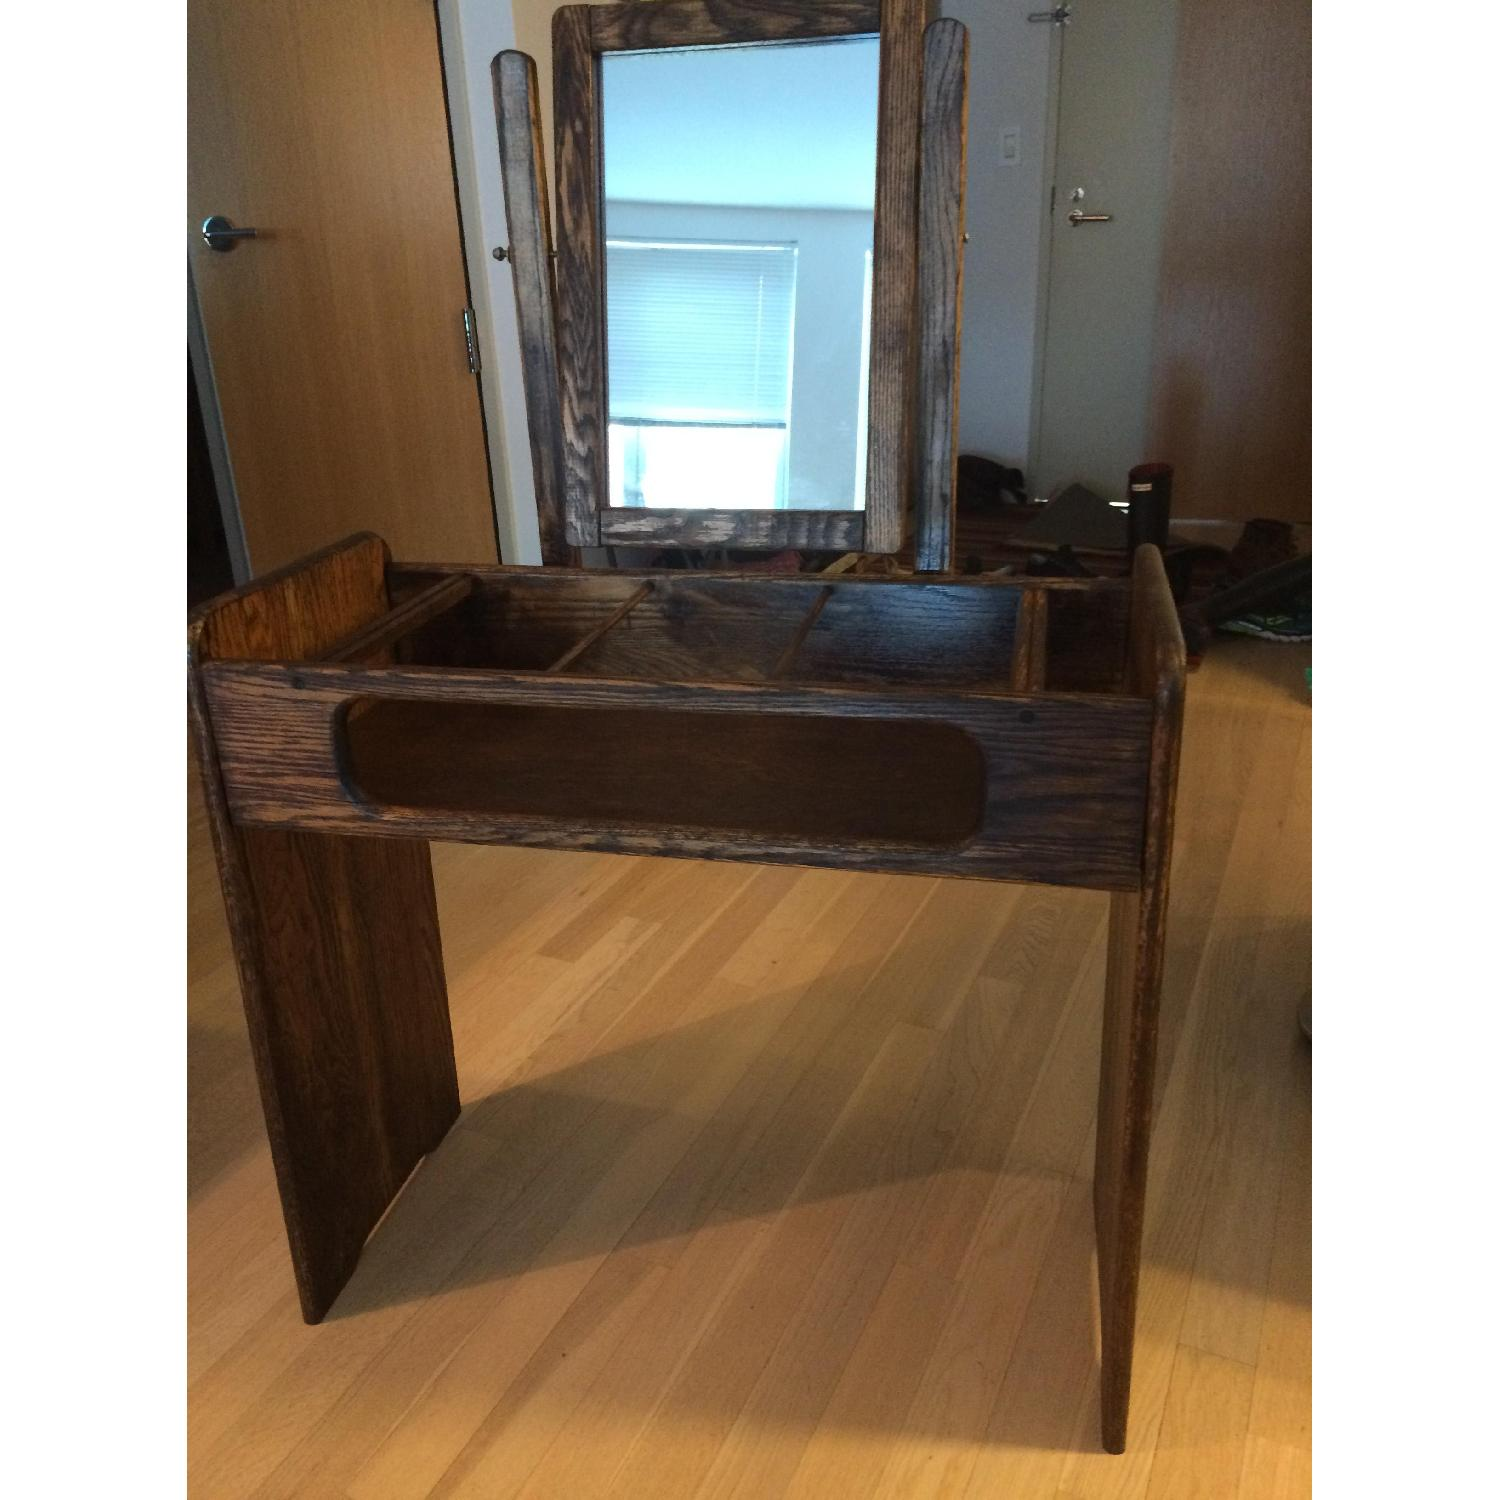 Make-Up/Vanity Table w/ Bench - image-1